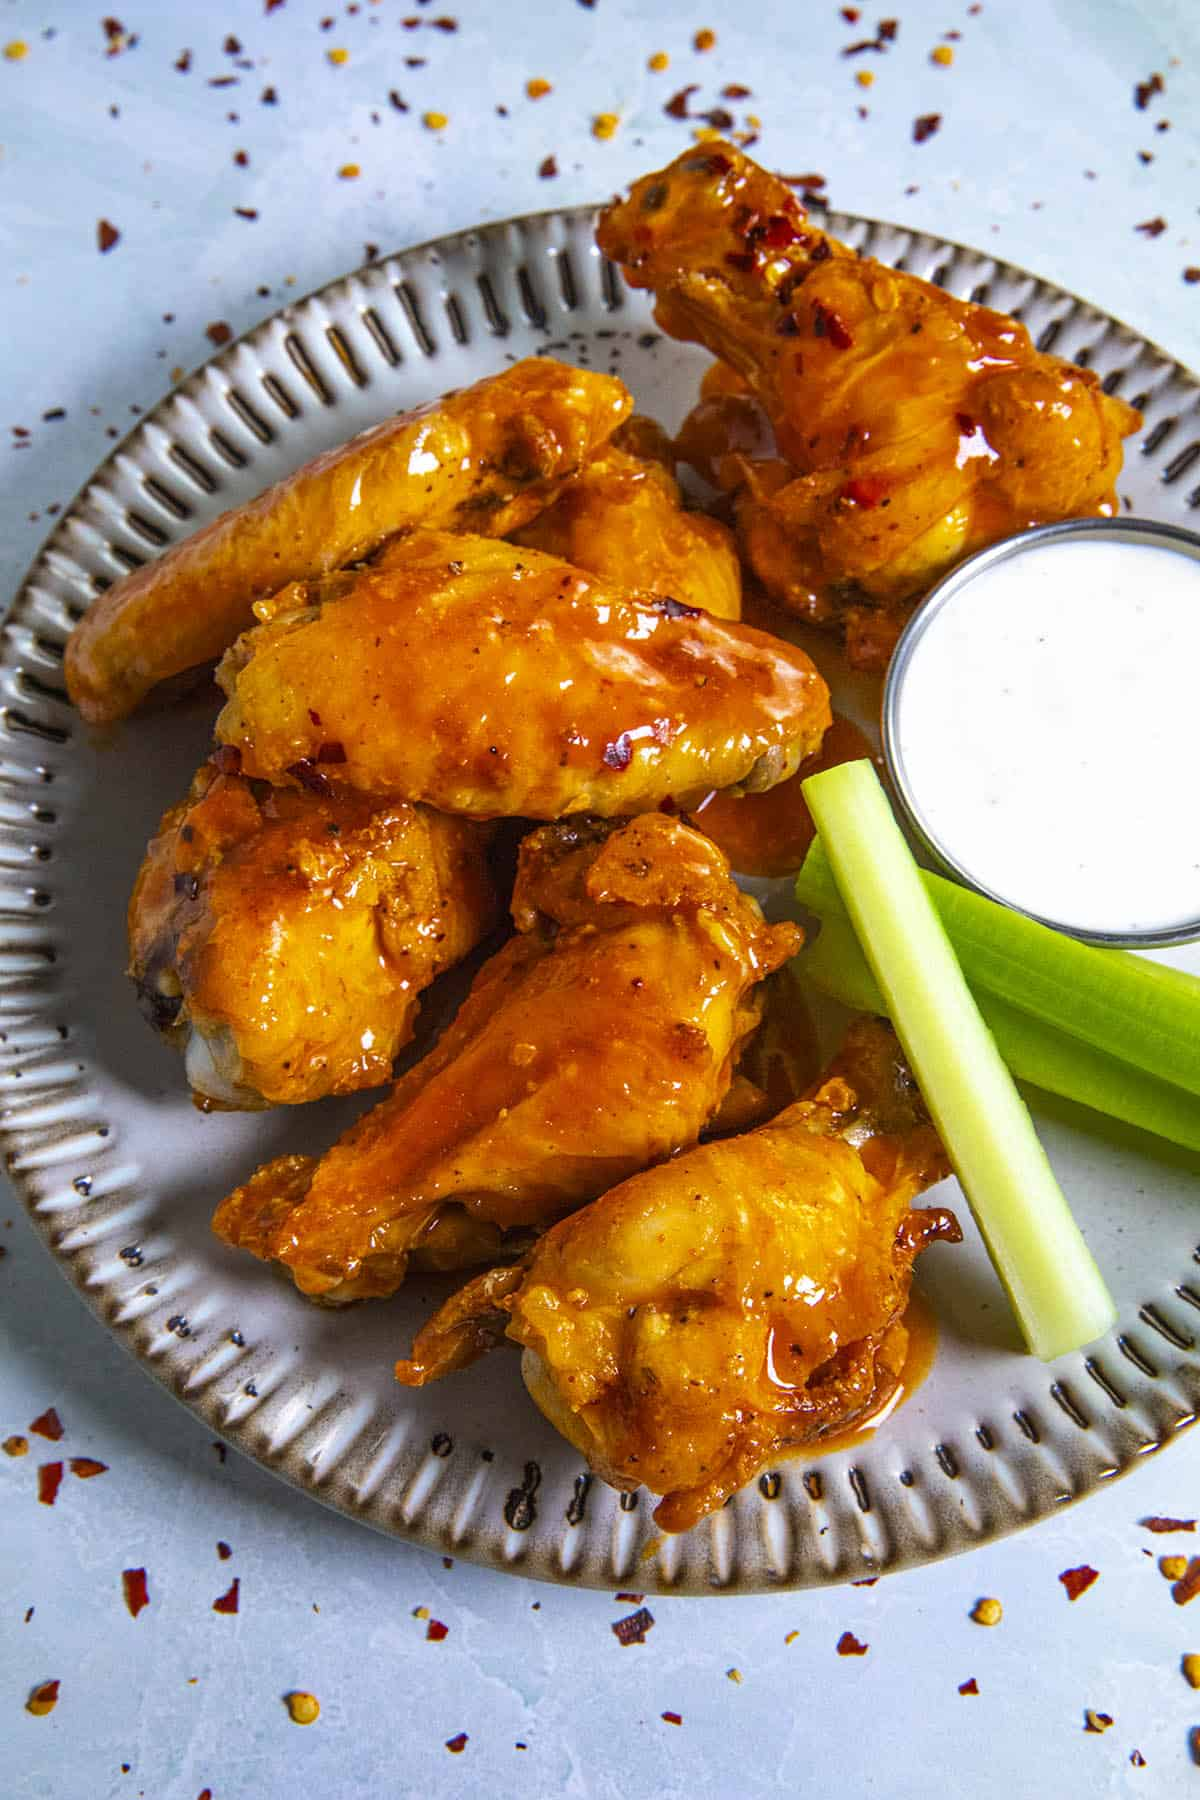 Saucy Buffalo Wings on a plate, ready to serve